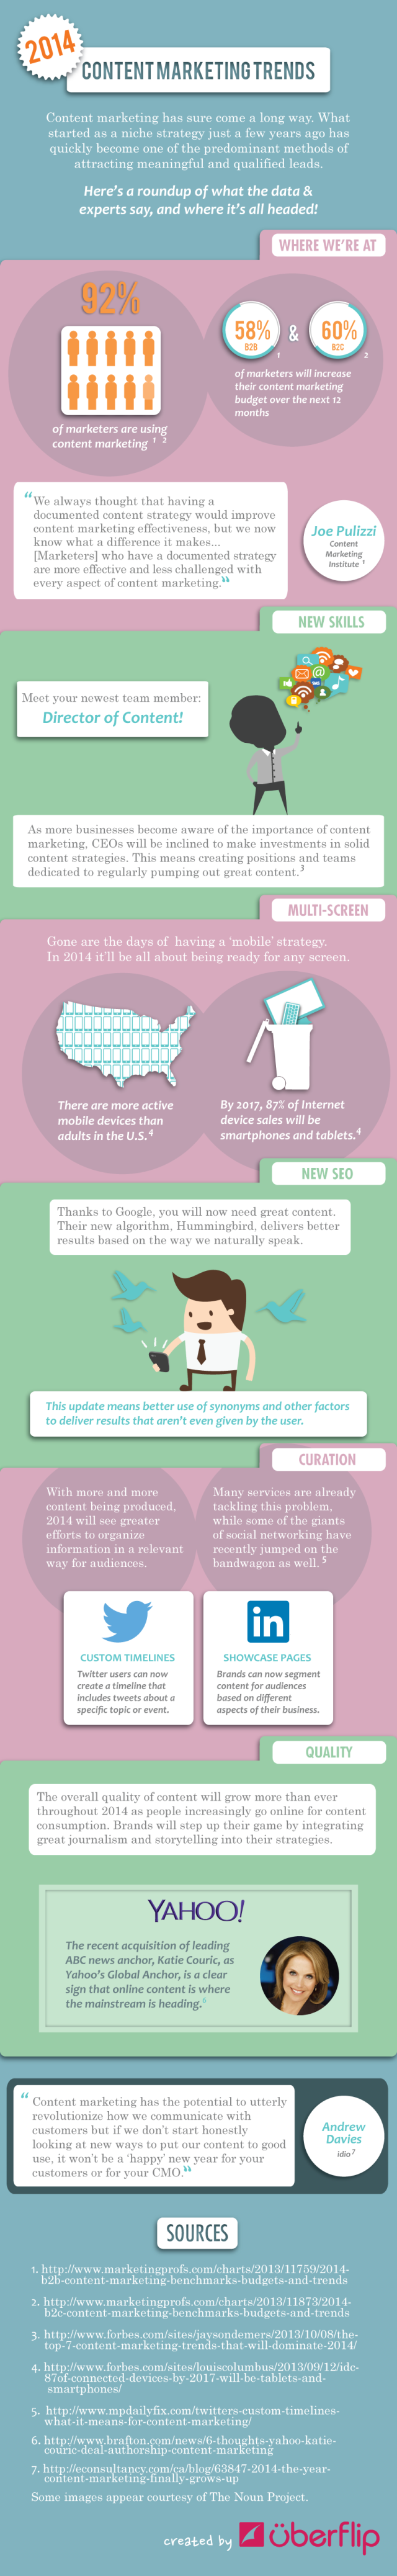 final-2014-trends-infographic-alternate-colours2